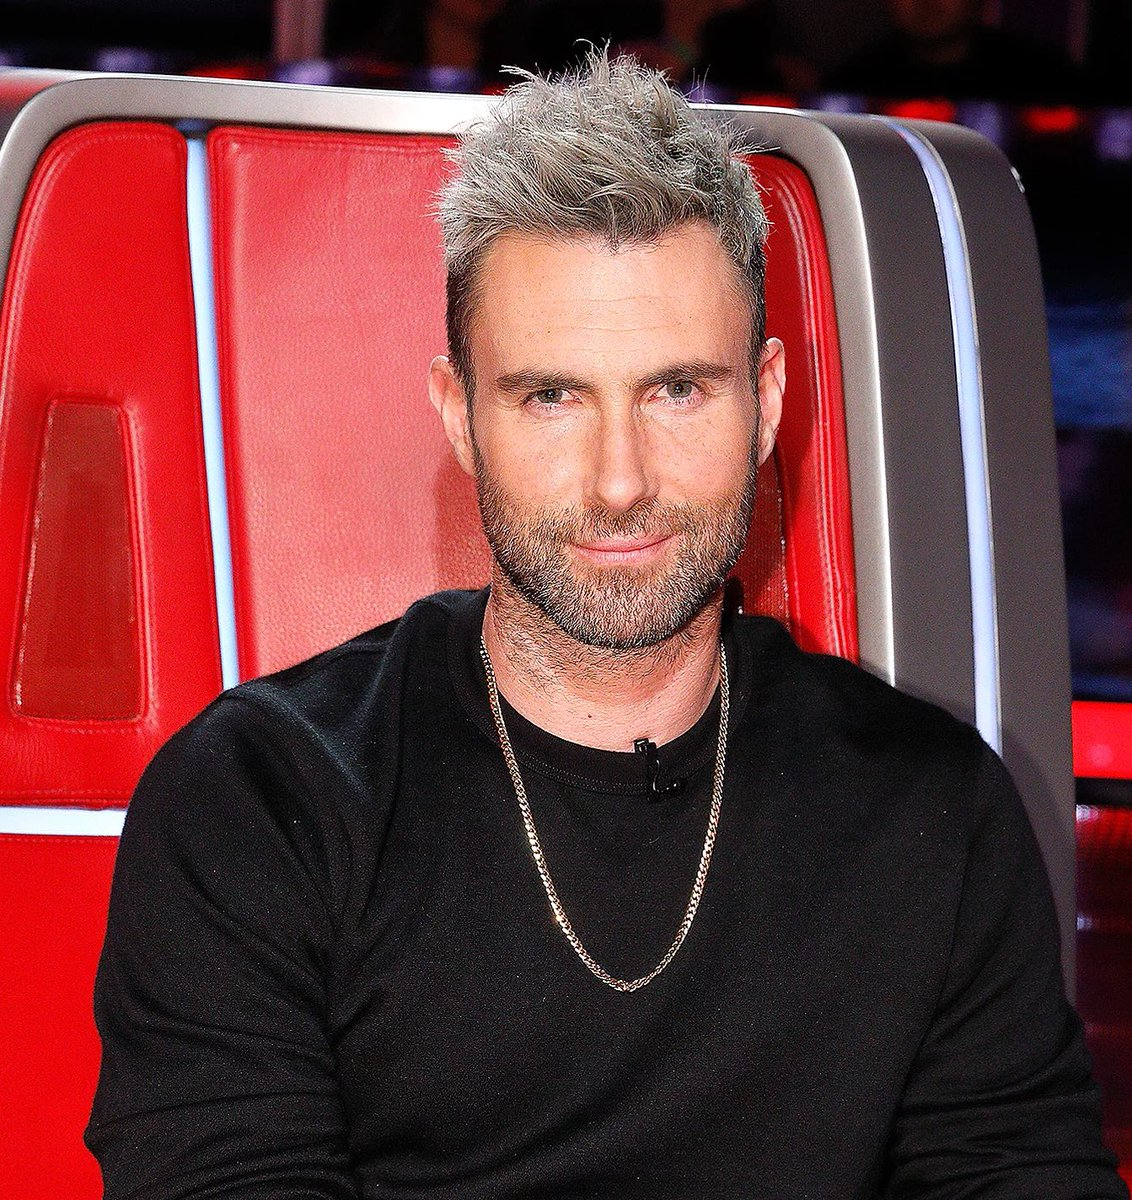 """Adam Levine tells Zane Lowe he's """"sad"""" that there's no bands anymore:  """"When the first Maroon 5 album came out there were still other bands. I feel like there aren't any bands anymore, you know? That's the thing that makes me kind of sad ... I feel like they're a dying breed."""""""